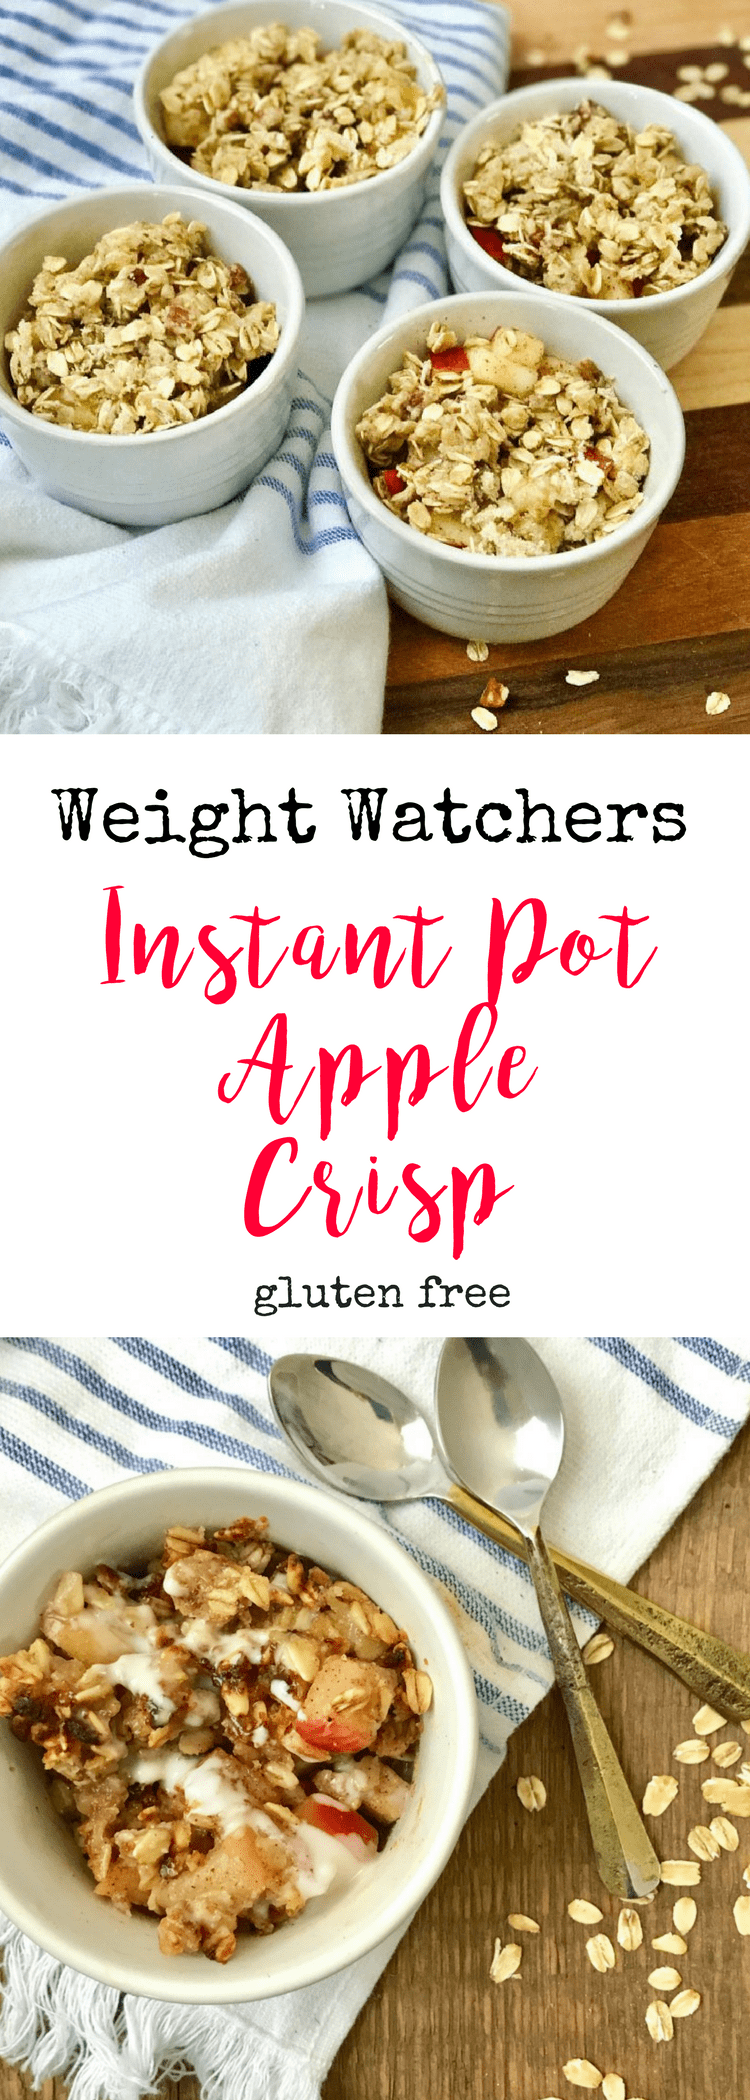 Weight Watchers Instant Pot Apple Crisp | Confessions of a Fit Foodie